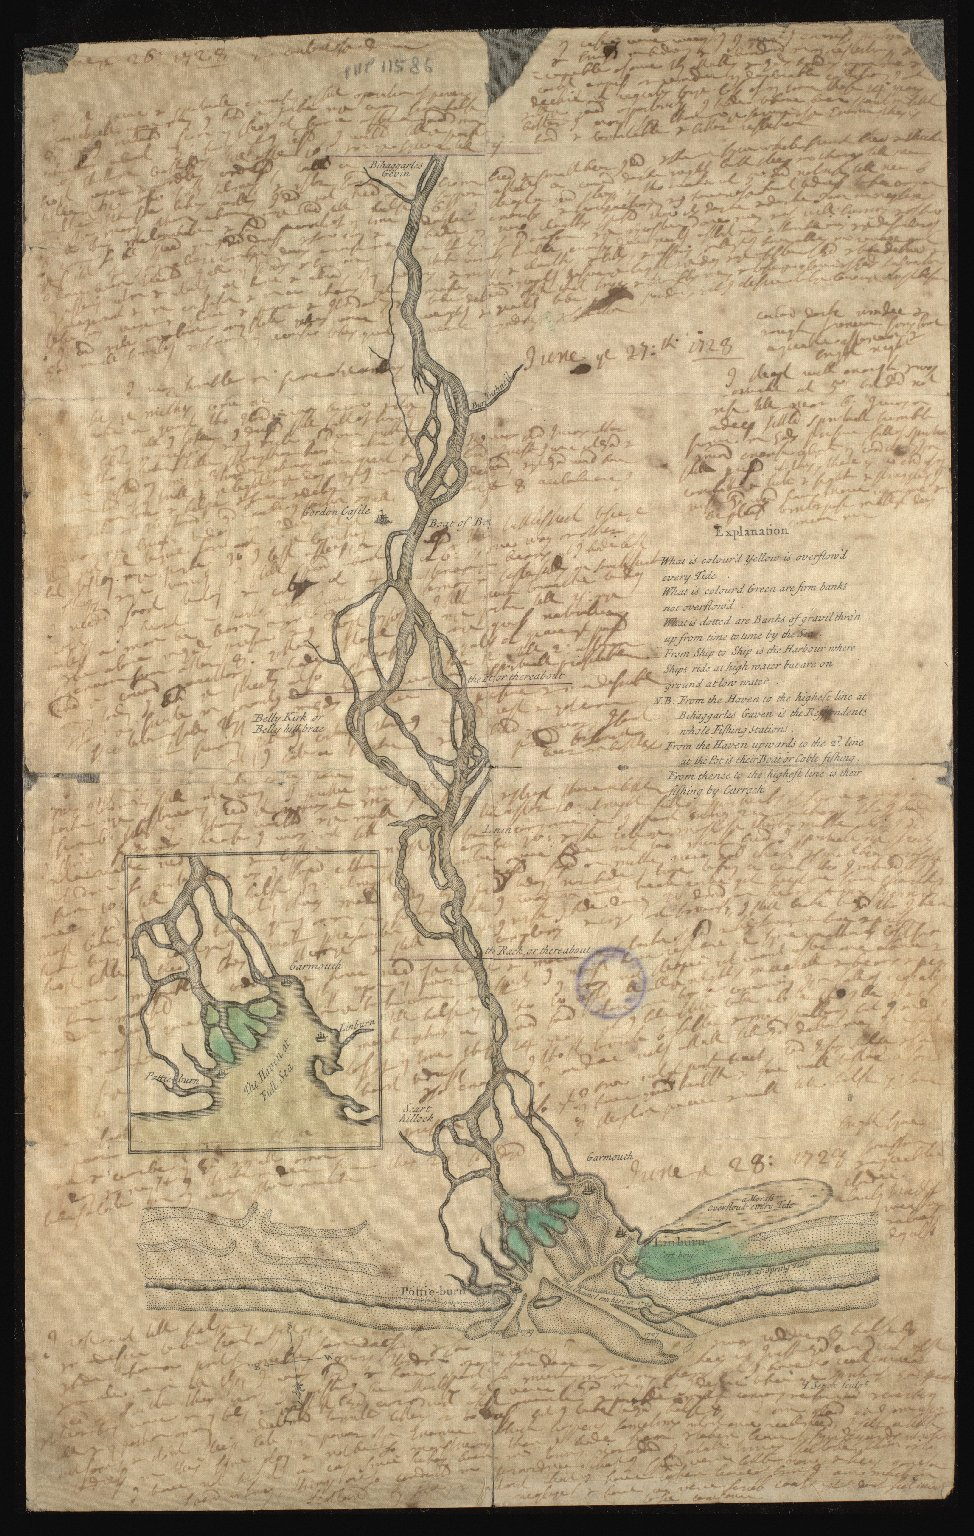 Plan of the mouth and lower reaches of the River Spey [1 of 2]